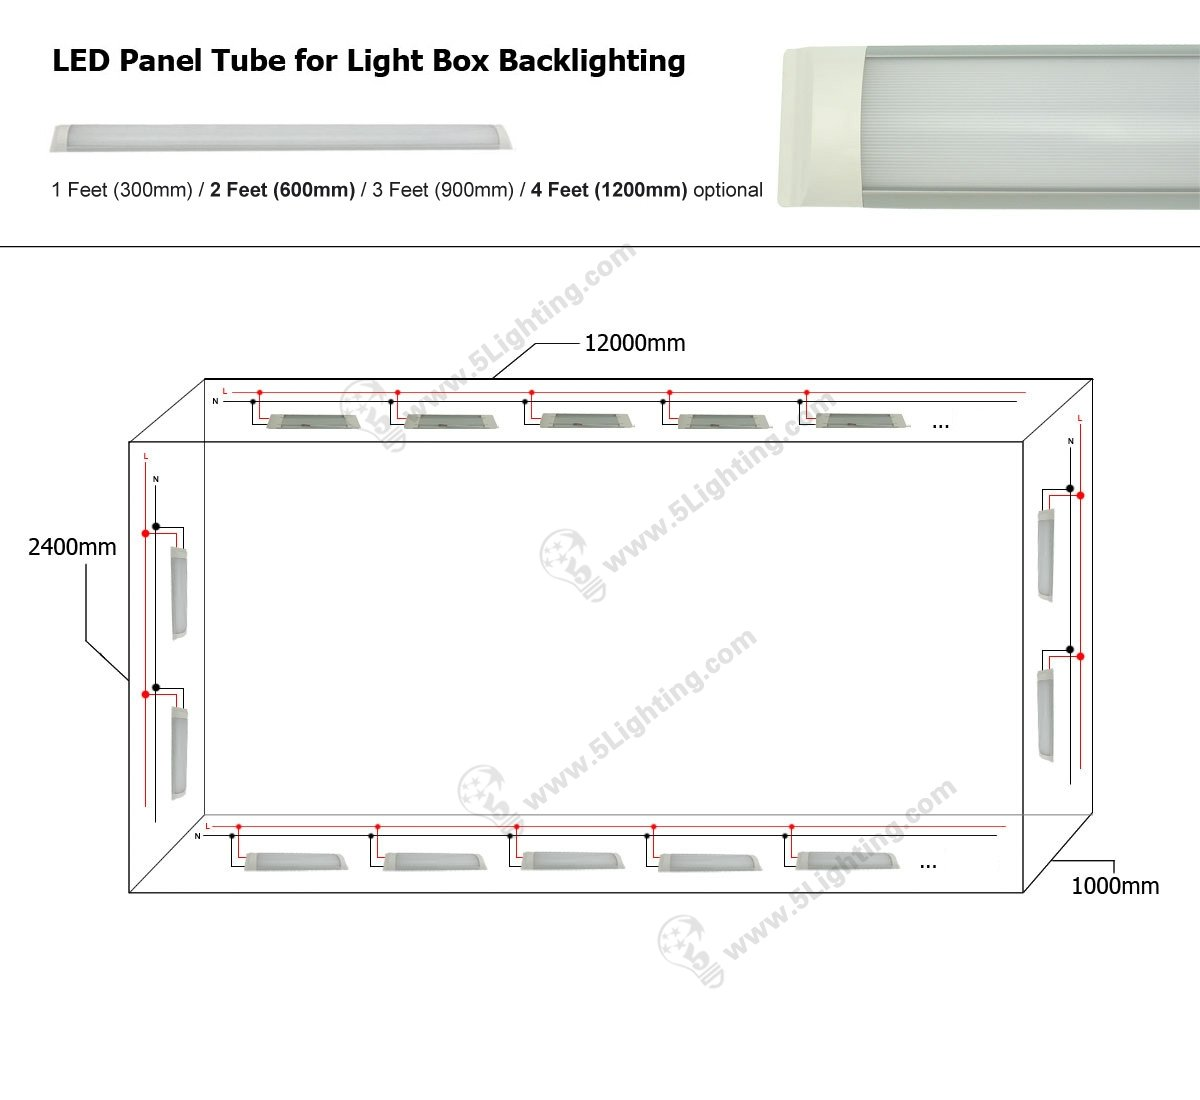 2ftGood Lights Flat Panel Tube Quality Led Wholesale QxtdCsrh